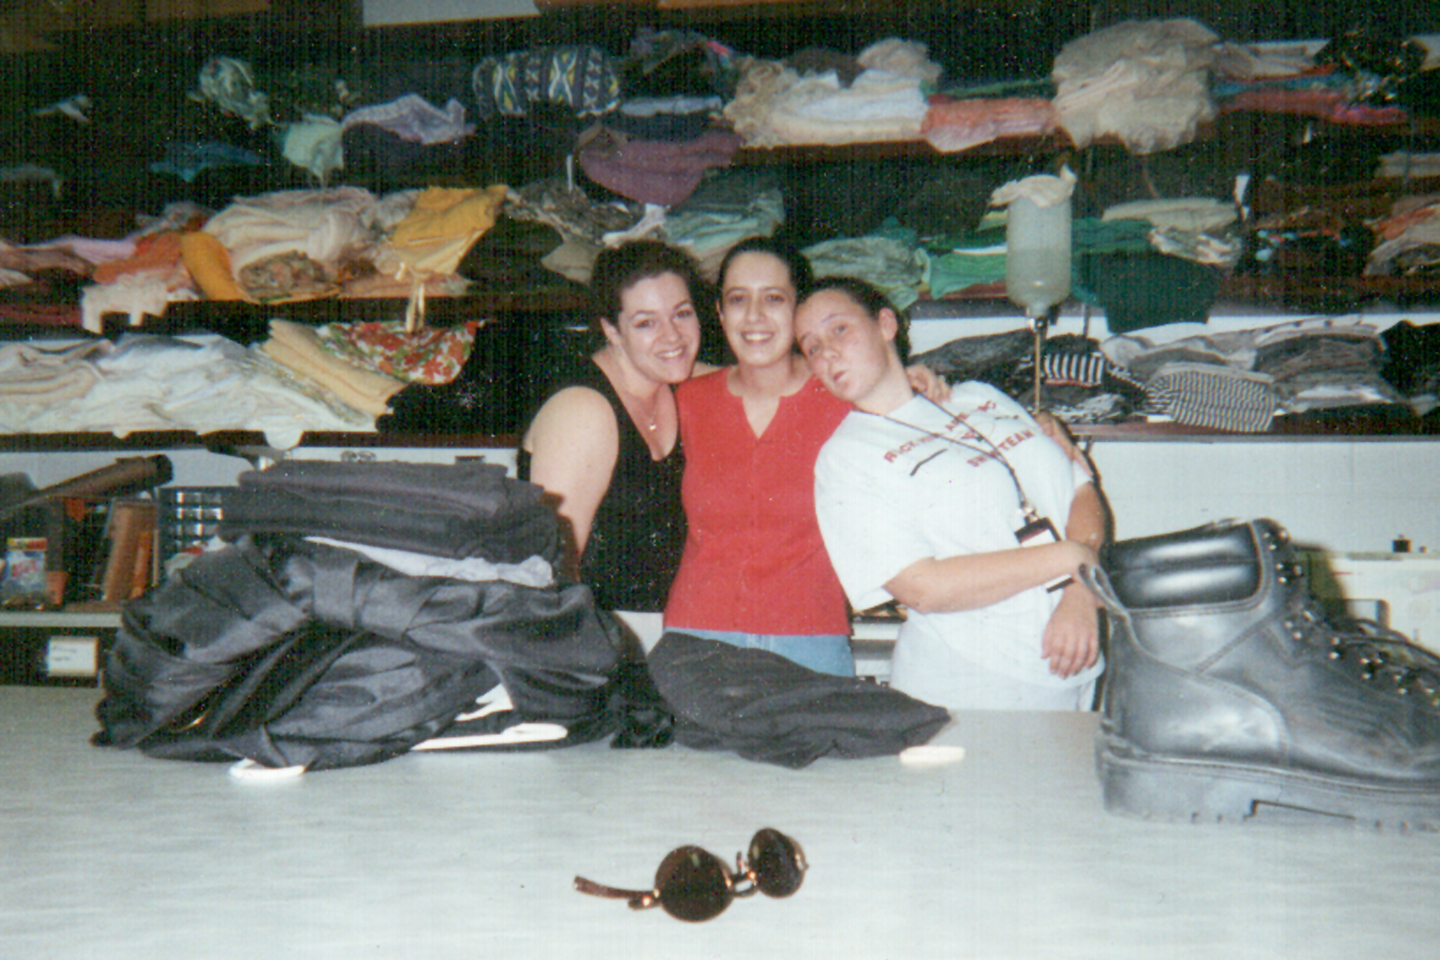 I'm on the left, this was my first costume shop - oh the stash!!!!